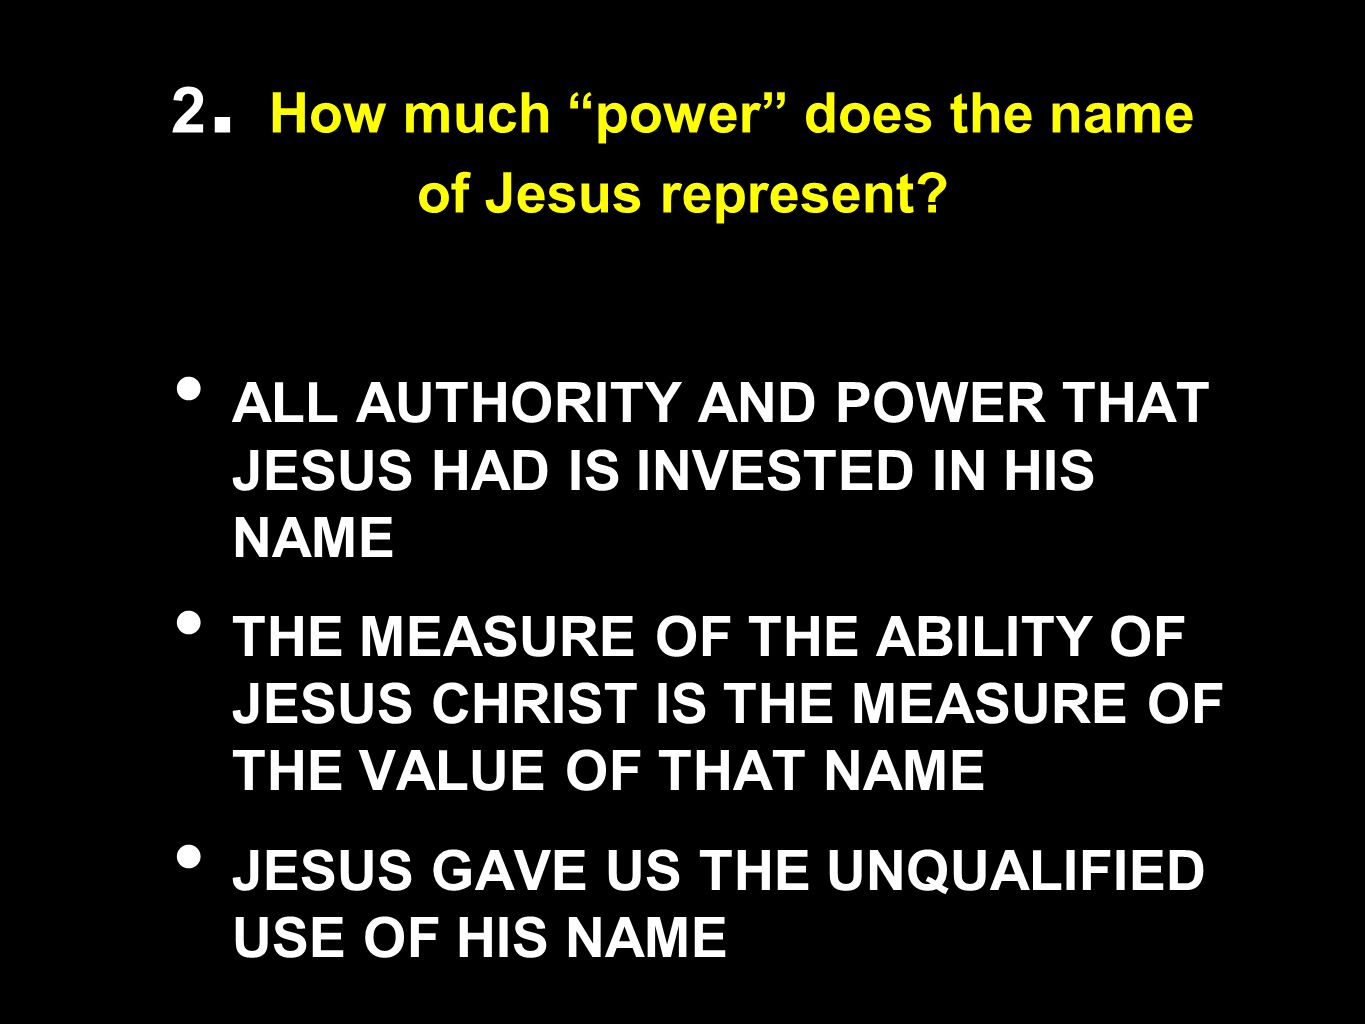 2. How much power does the name of Jesus represent